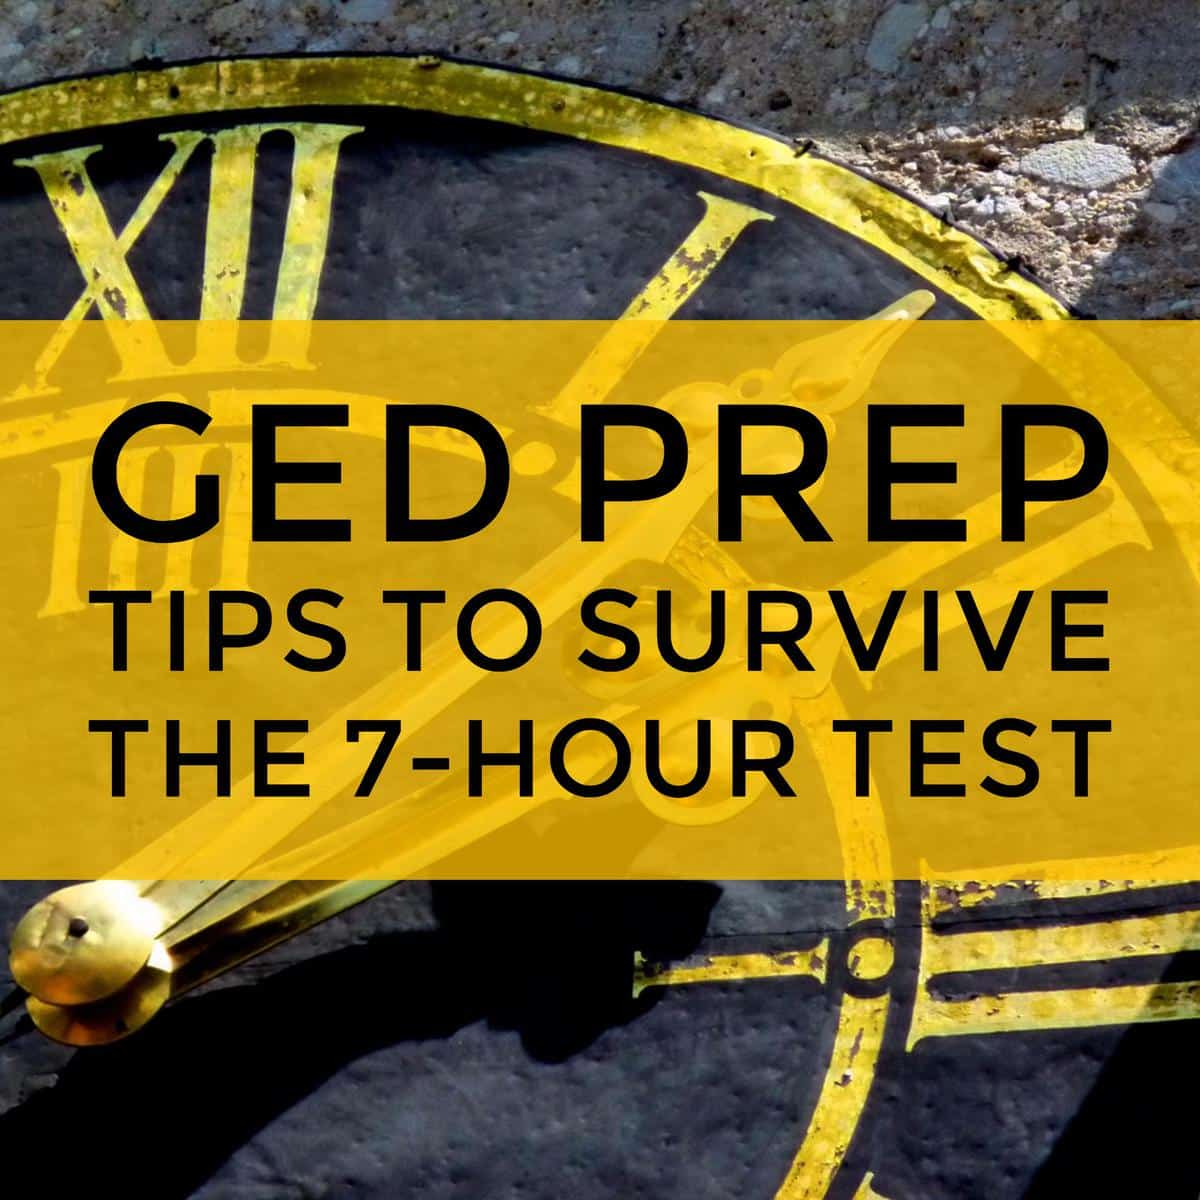 GED Prep Tips to Survive the 7-Hour Test - get ready for GED